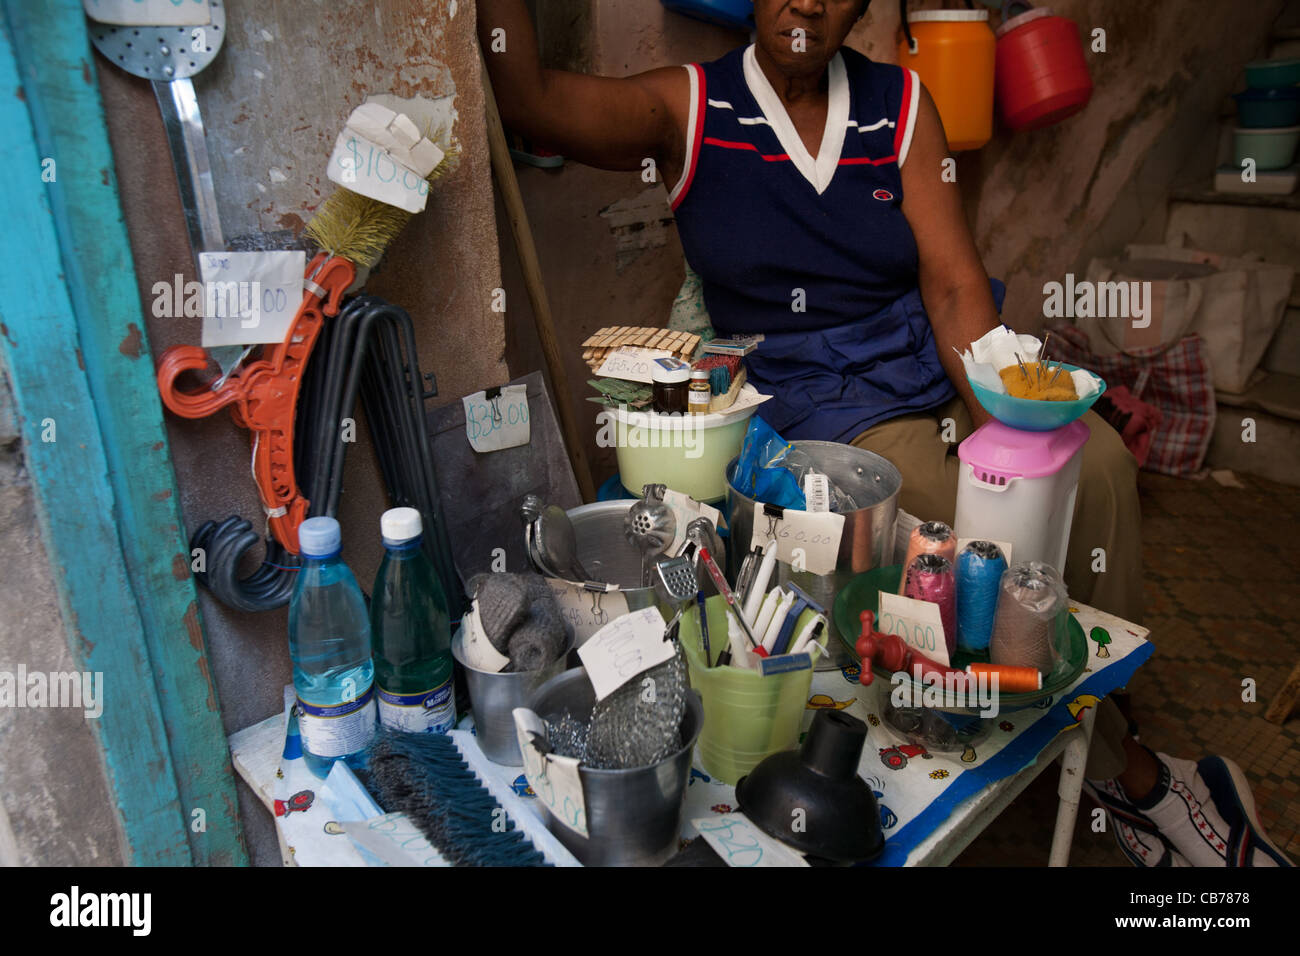 A woman selling stuff and staples in the street at the front of her home, Havana (La Habana), Cuba - Stock Image